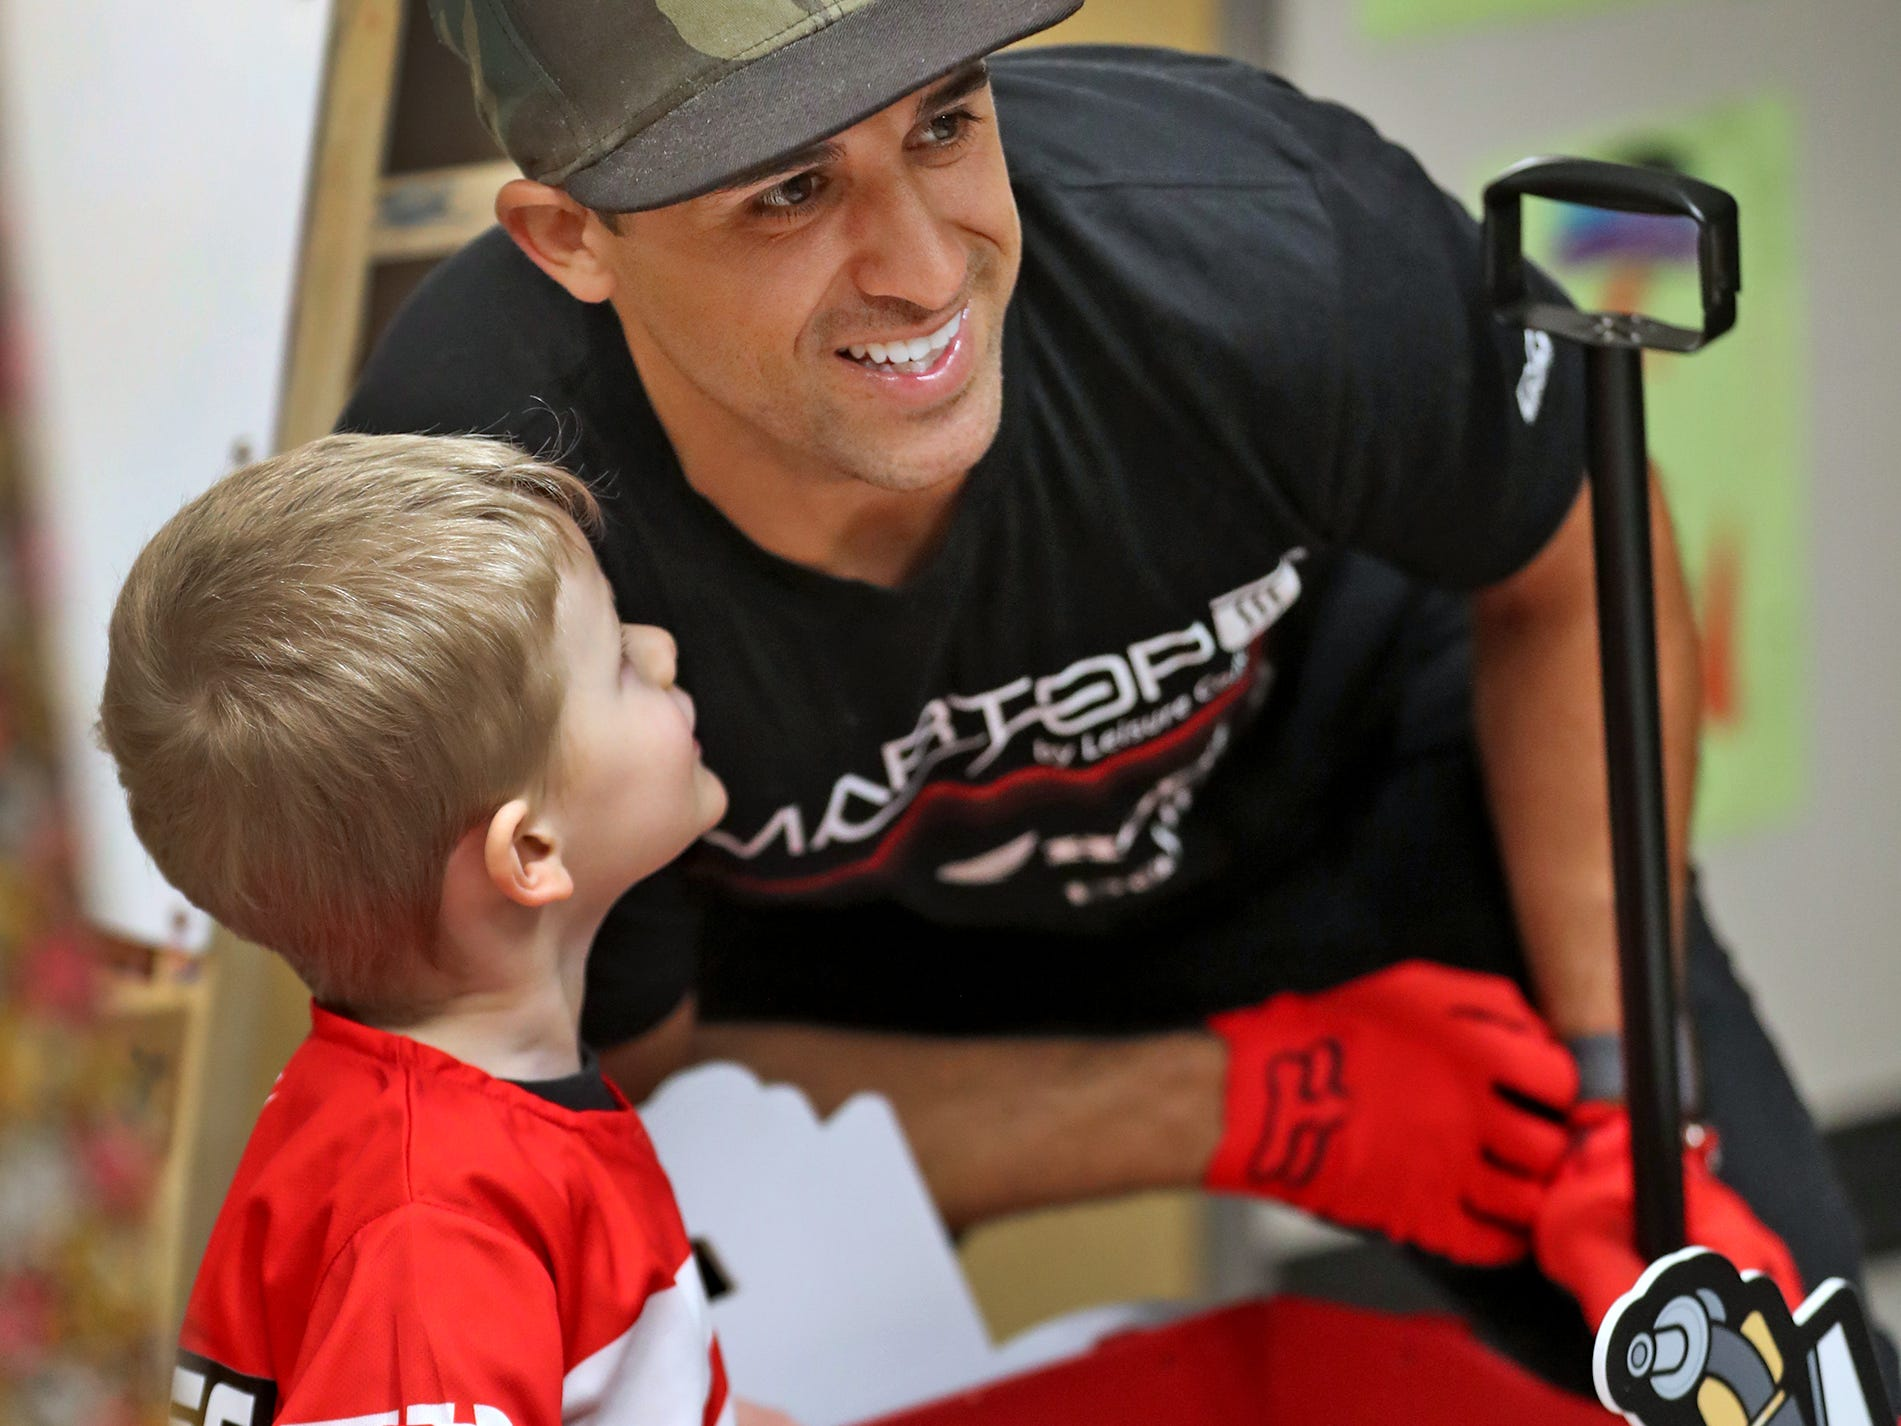 Oliver Carleton, left, looks up as he gets a photo taken with  Supercross racer Mike Alessi visiting with kids at Day Early Learning Center, Thursday, March 14, 2019.  Alessi provided Supercross rider jerseys and hats for the kids and gave wagon rides, on a break before the upcoming Supercross race.